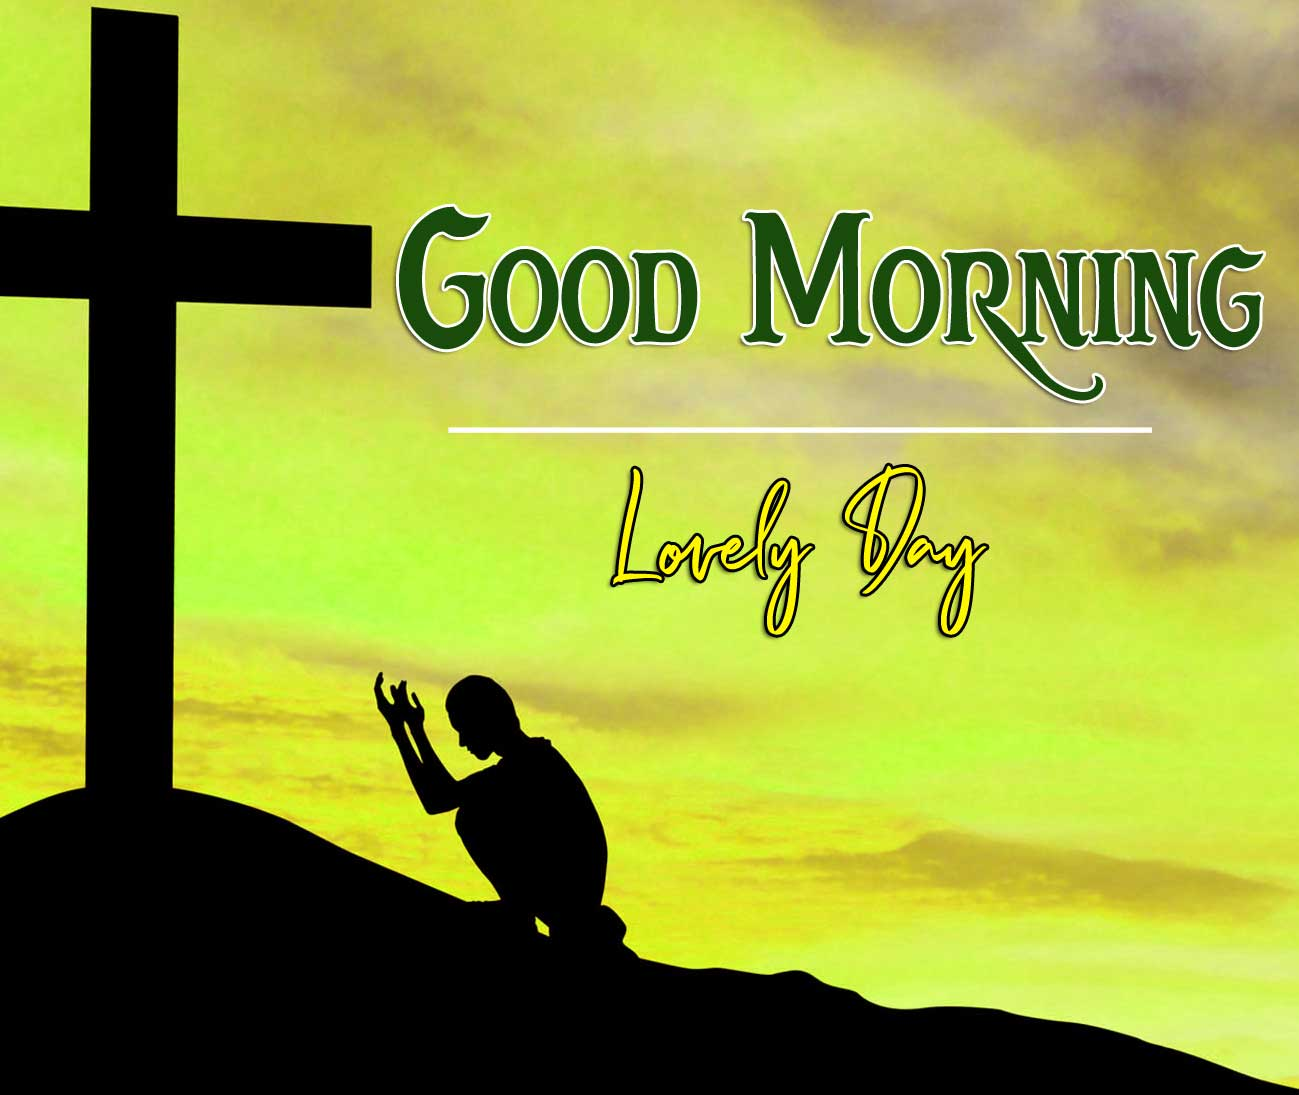 Religious Good Morning Images 5